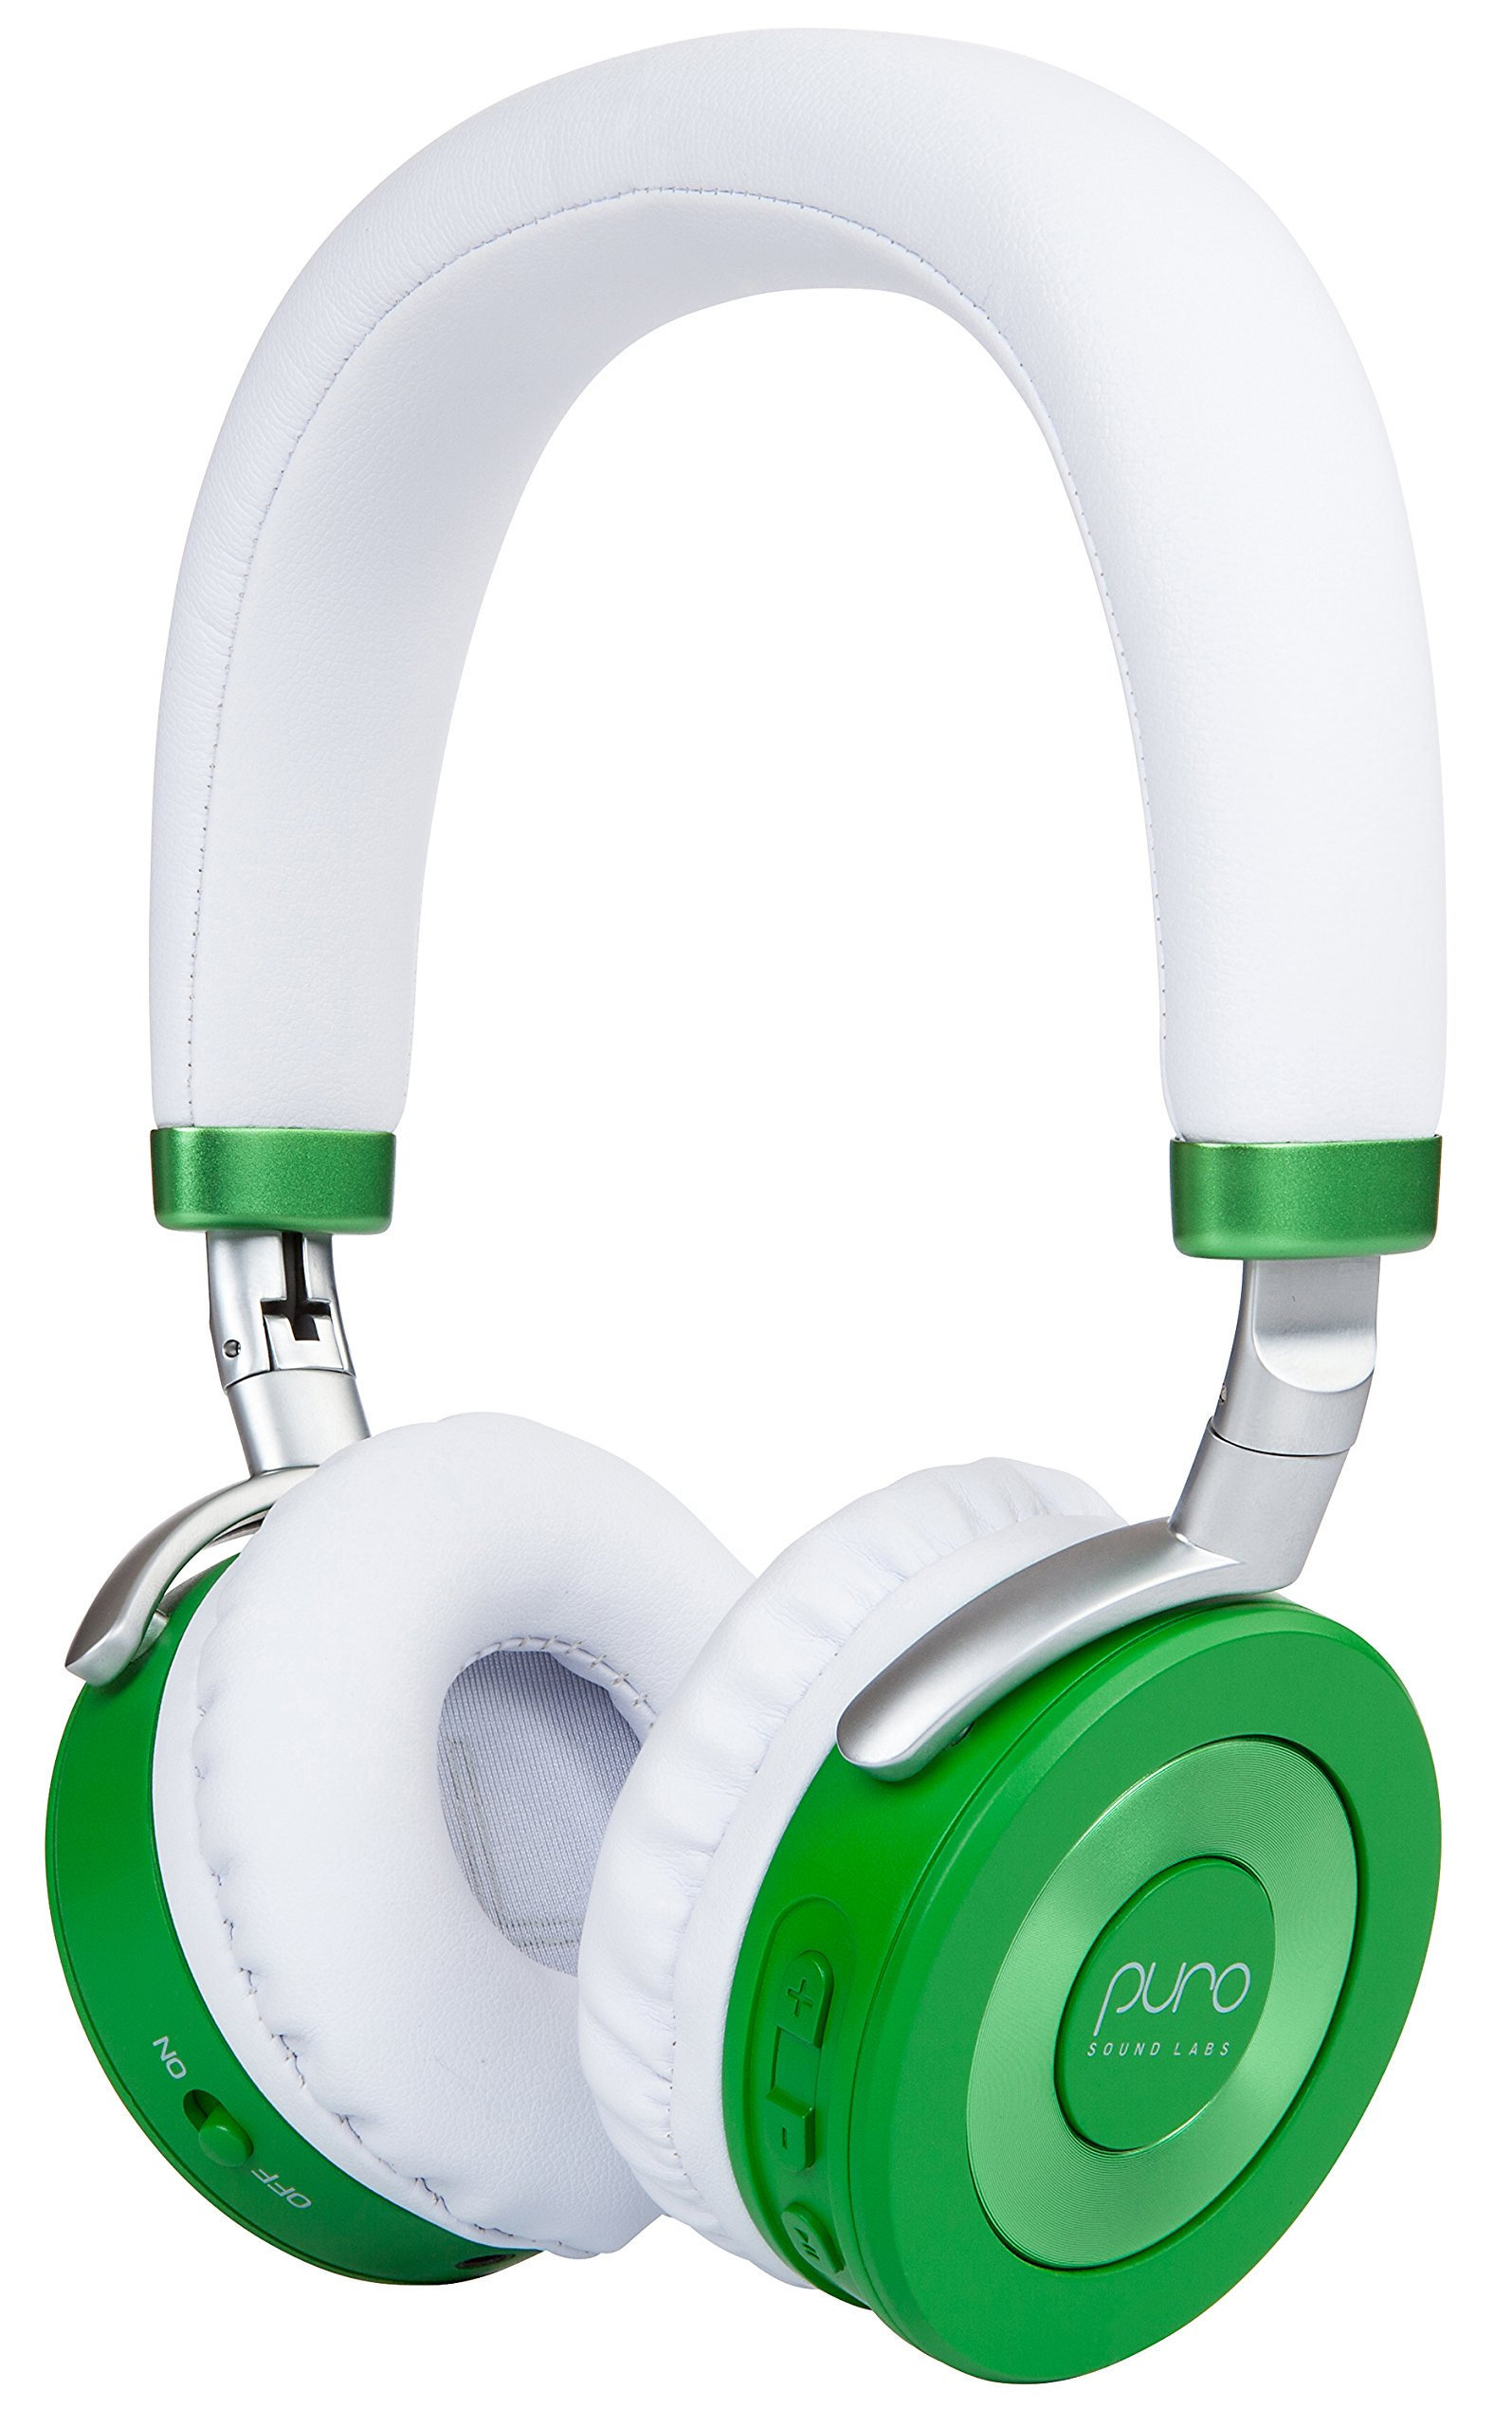 Puro Sound Labs JuniorJams Over-Ear Headphones Wireless Foldable Kids Earphones with Bluetooth, Volume Limiting, Lightweight and Noise Isolation for iPhone/Android/PC/Tablet - JuniorJams Green